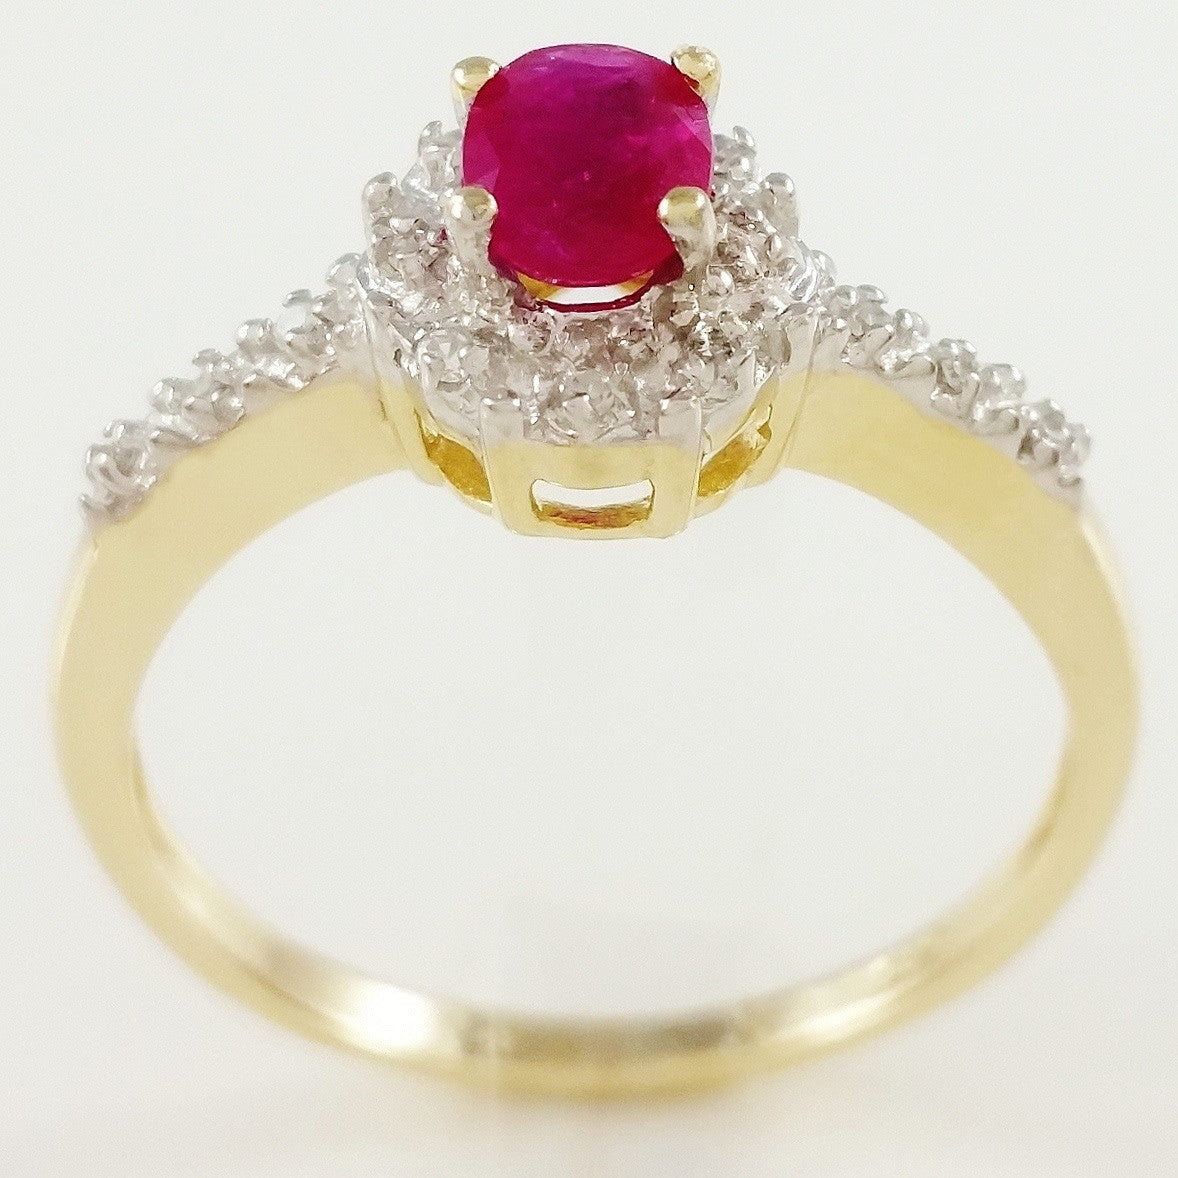 9K SOLID GOLD VINTAGE INSPIRED 0.50CT NATURAL RUBY RING WITH 14 DIAMONDS.